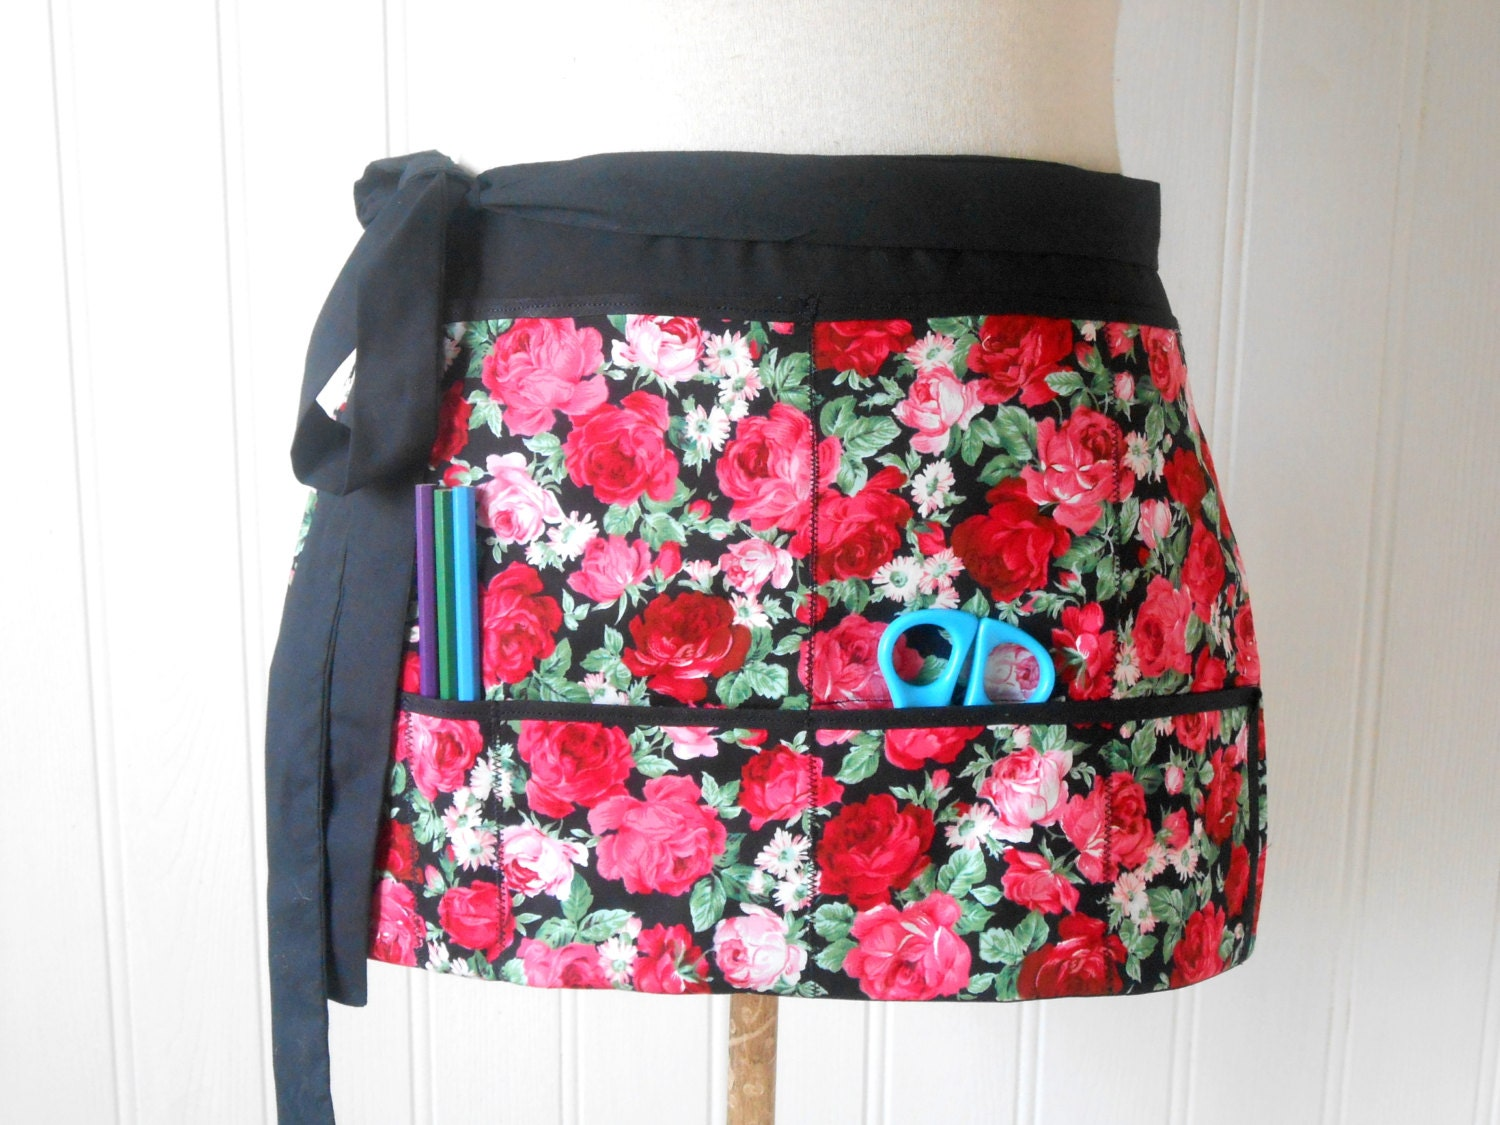 Floral red utility vendor market craft apron makeup artist, hairdresser, teacher READY TO SHIP